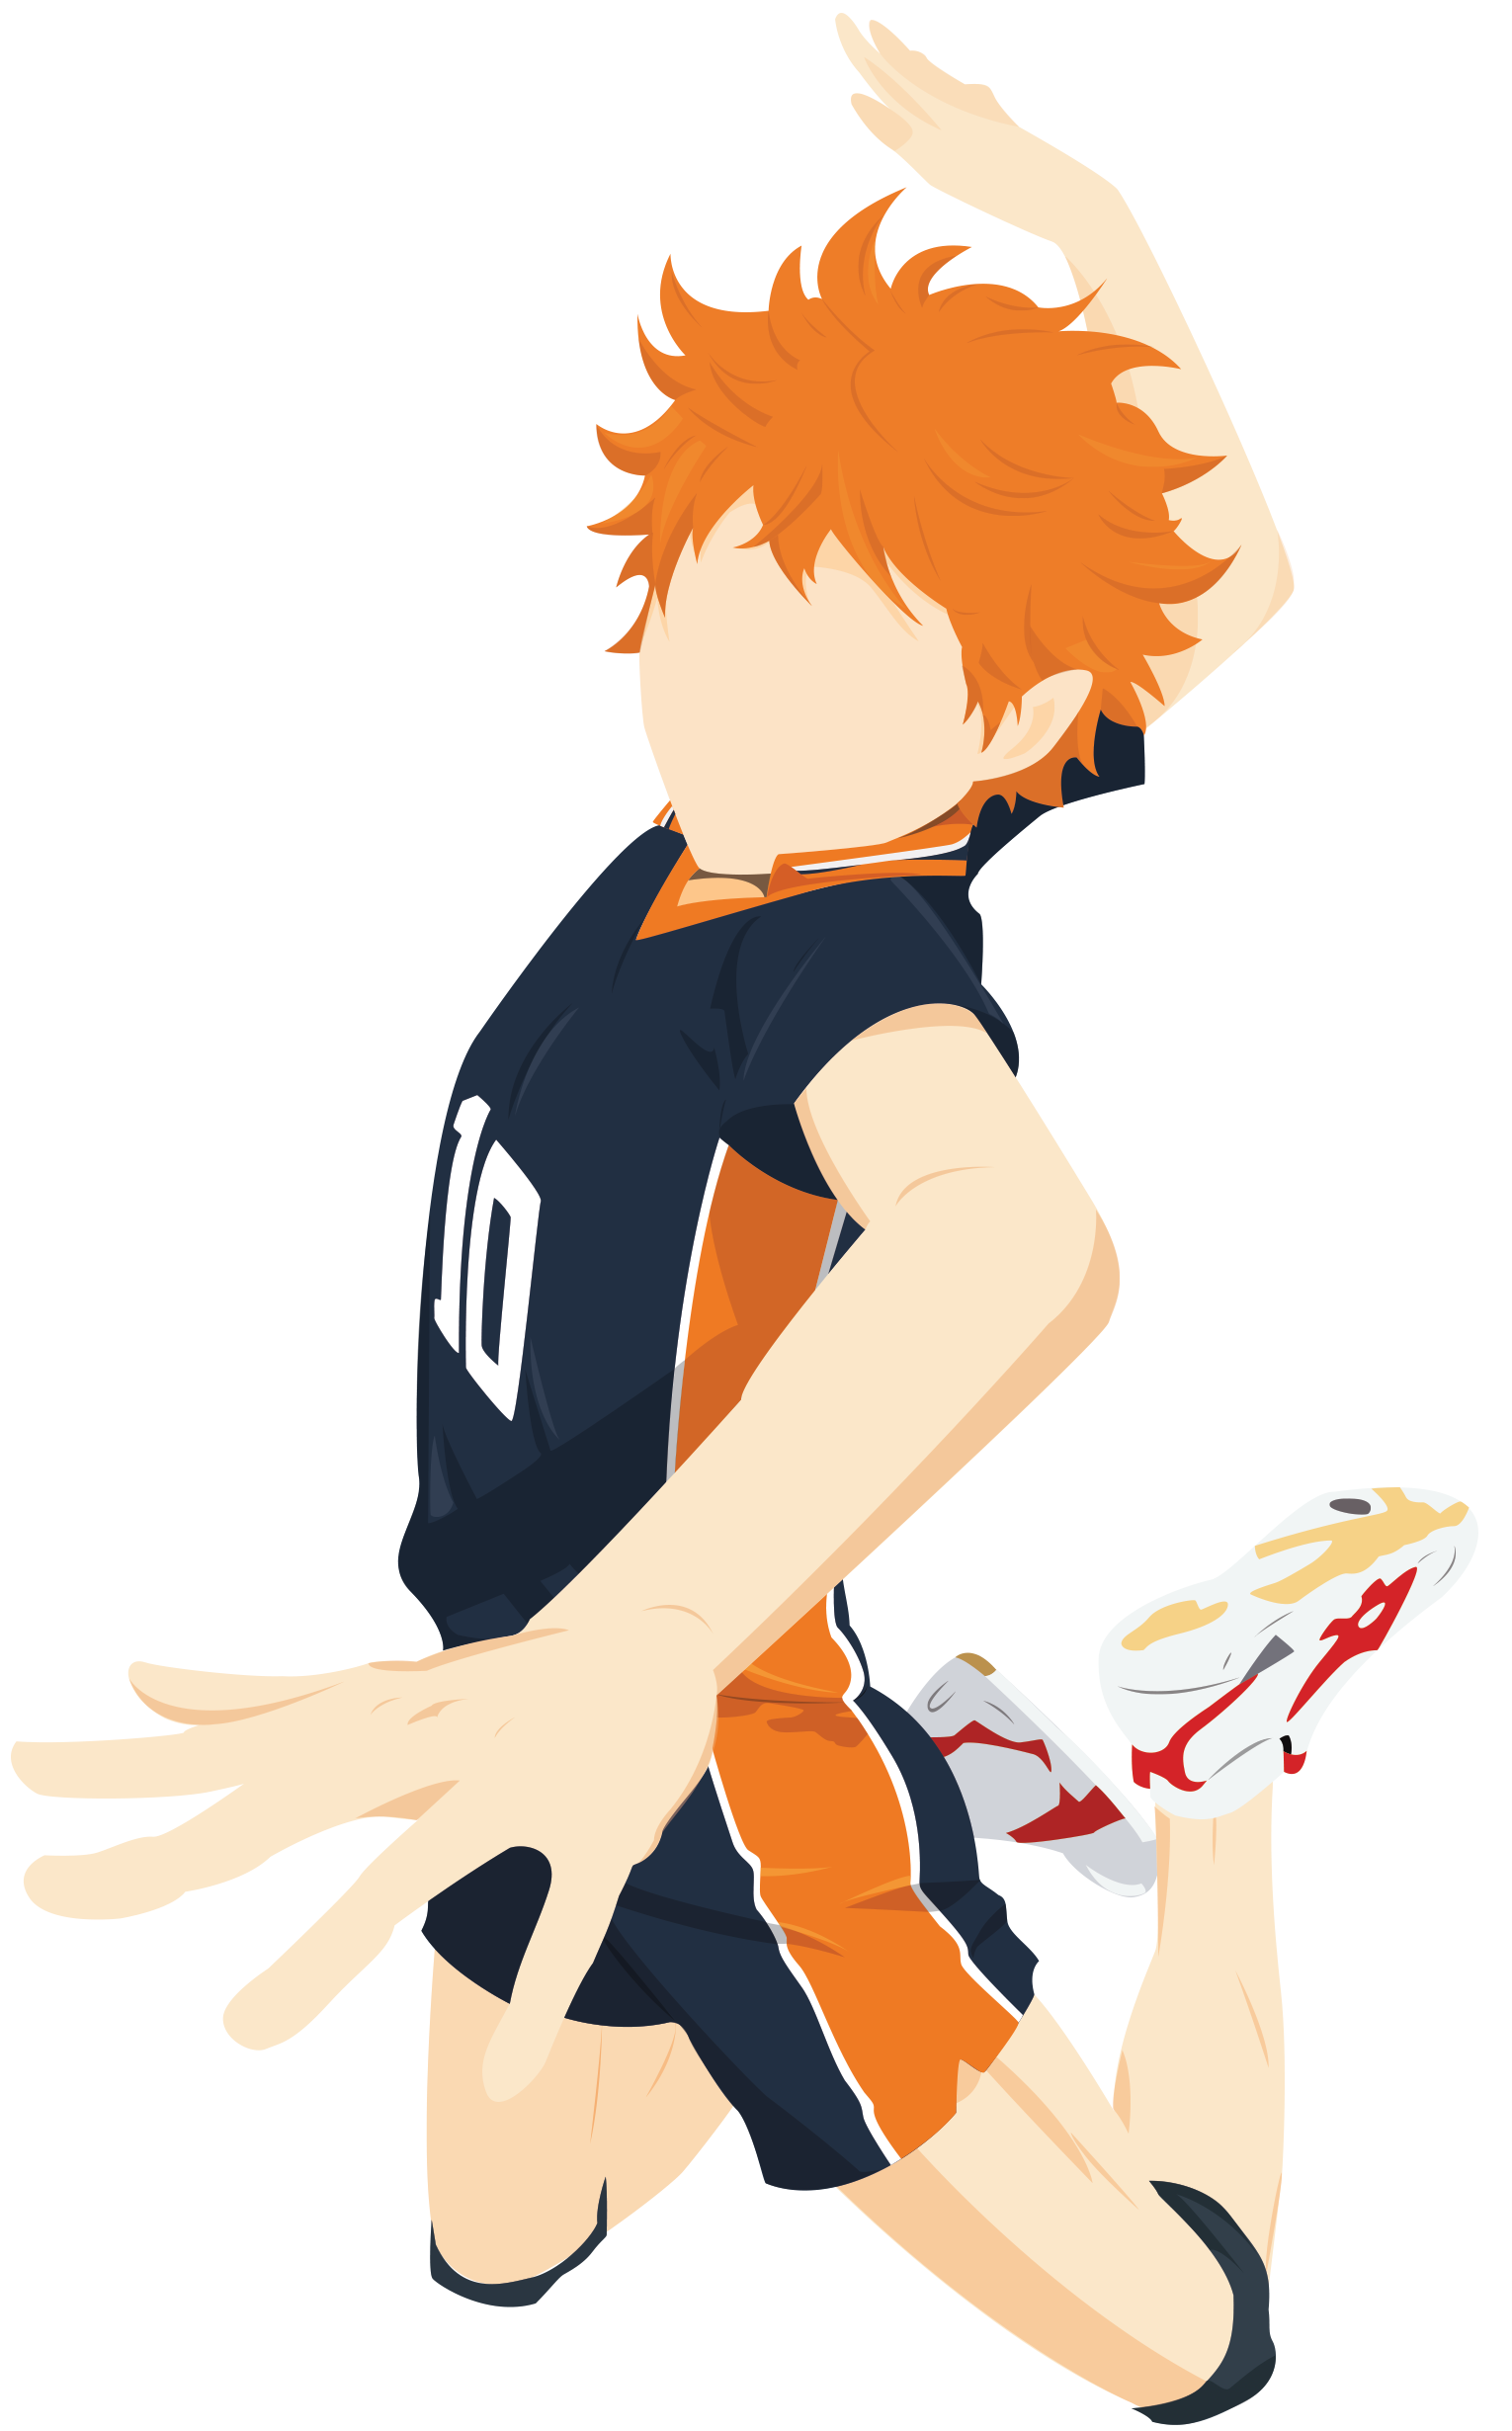 Volleyball Clipart Haikyuu Volleyball Haikyuu Transparent Free For Download On Webstockreview 2020